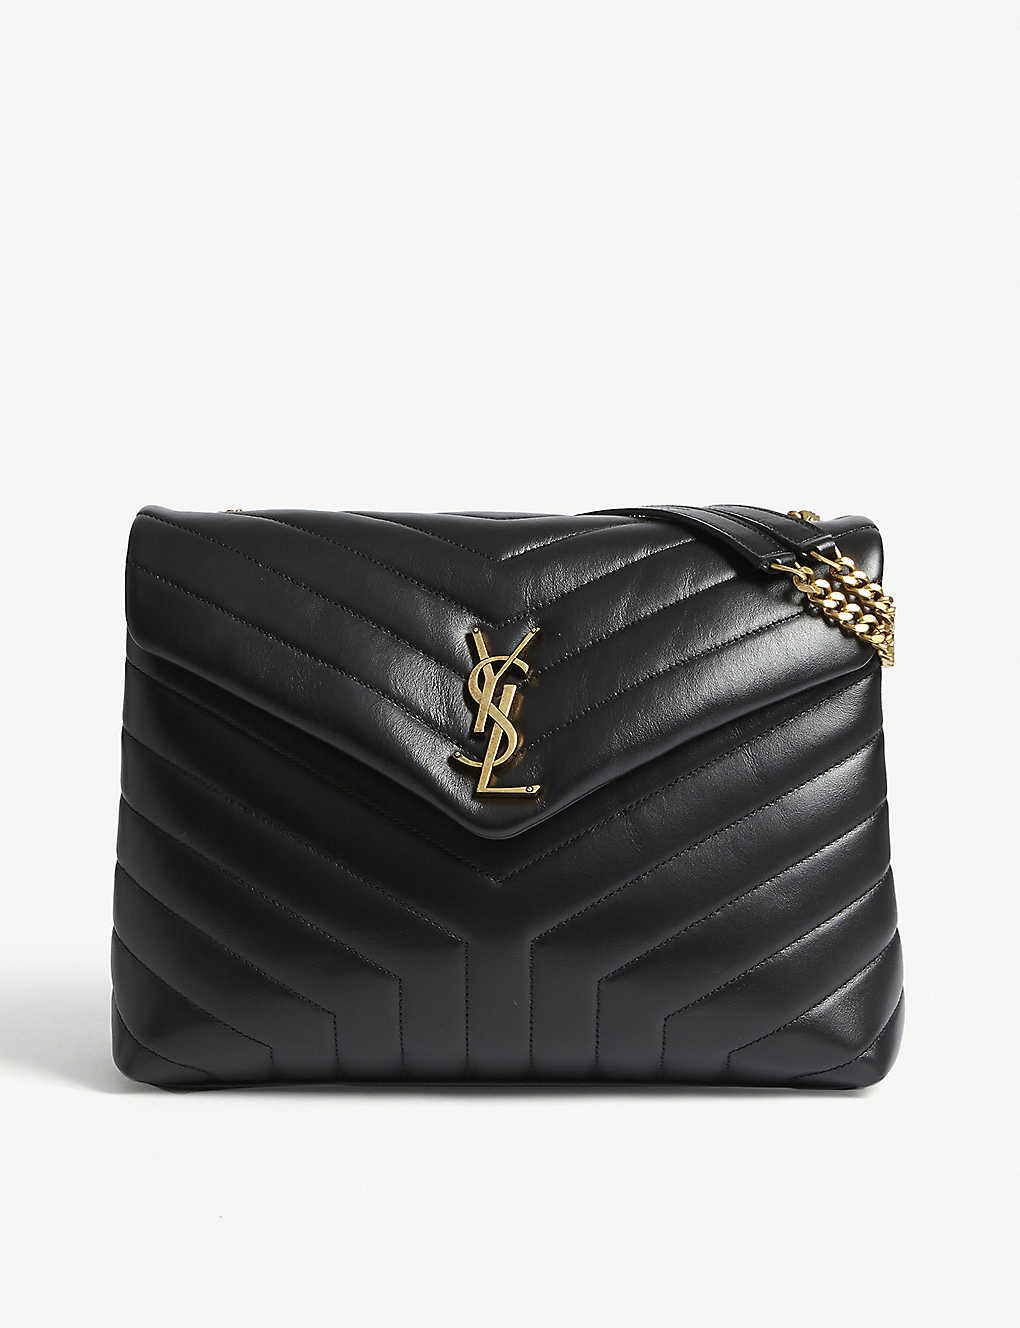 SAINT LAURENT: Loulou monogram medium leather shoulder bag